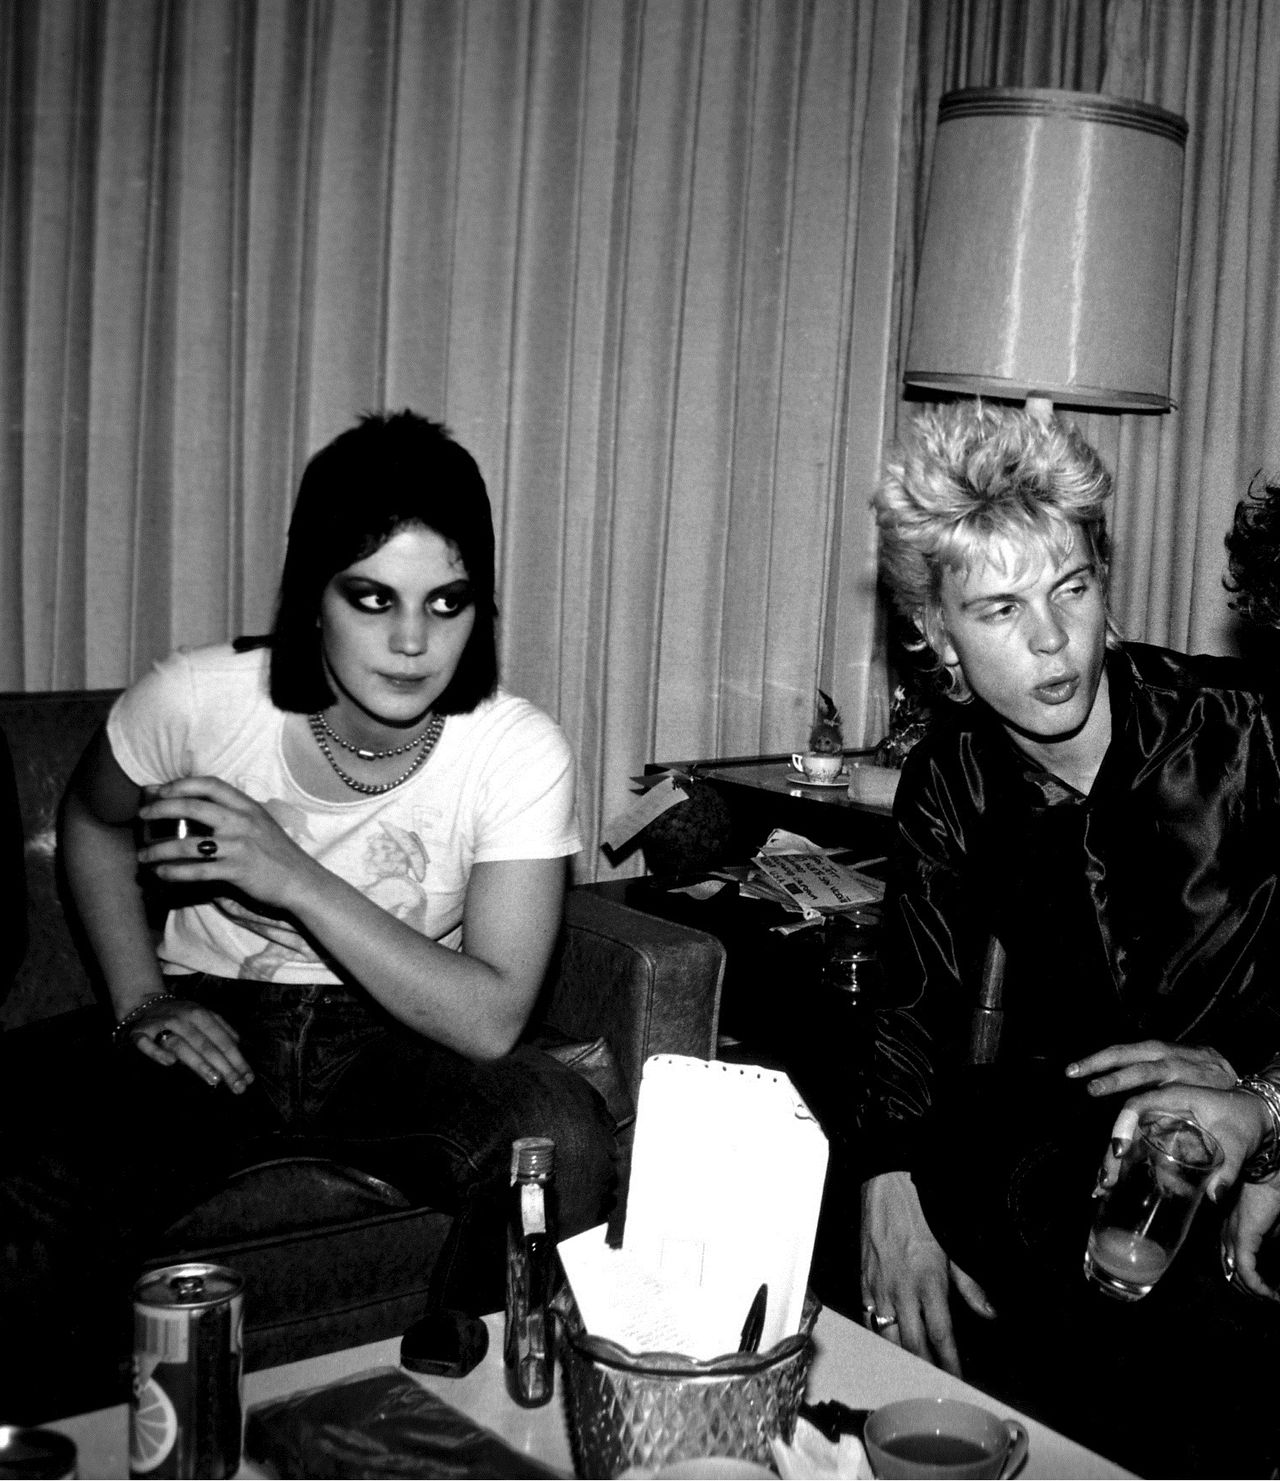 Joan Jett & Billy Idol photographed by Theresa Kereakes.